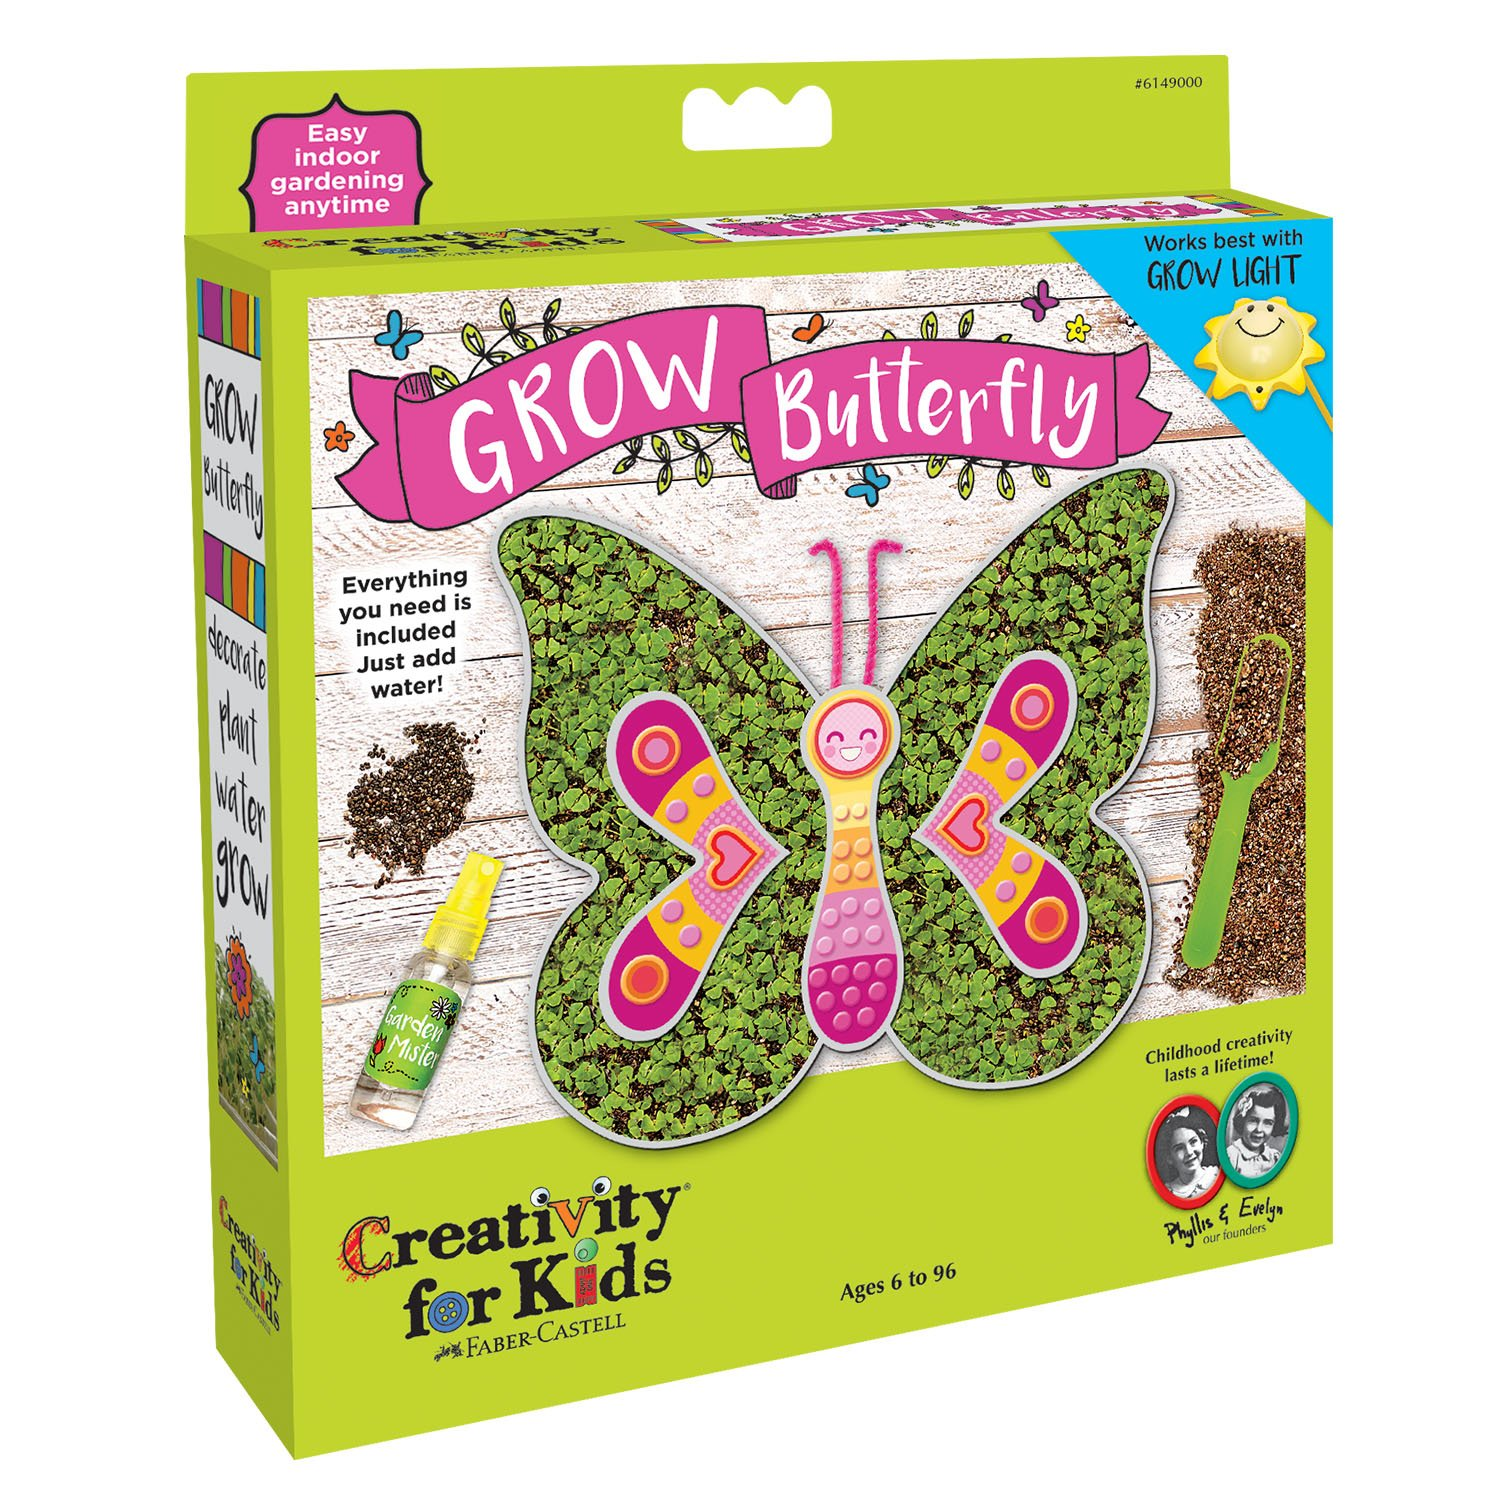 Creativity for Kids GROW Butterfly - Chia Seed Indoor Gardening Kit for Kids